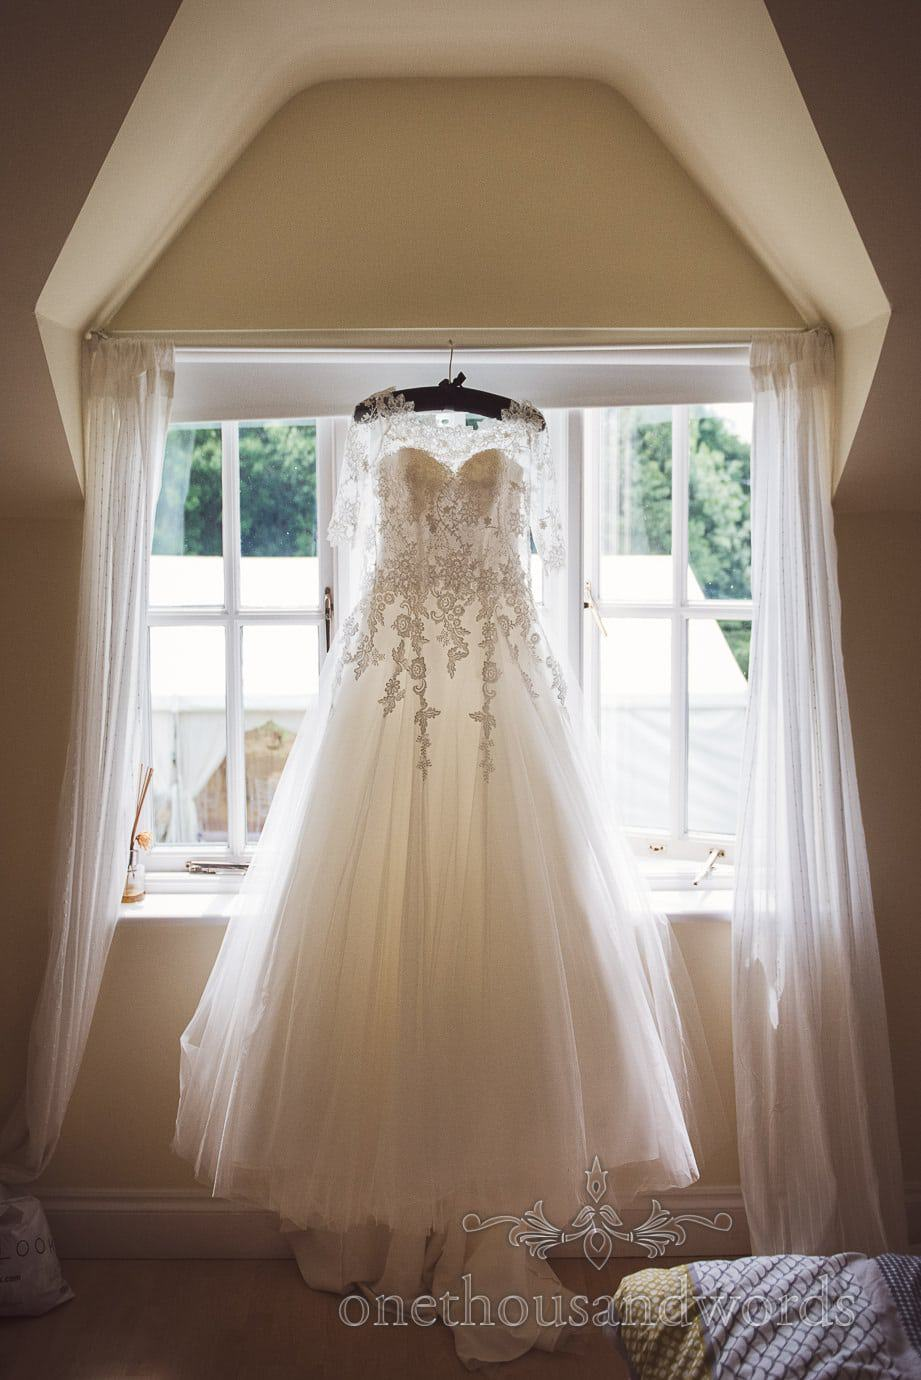 White A Line backless dress with lace detailing and lace bolero hang backlit in window